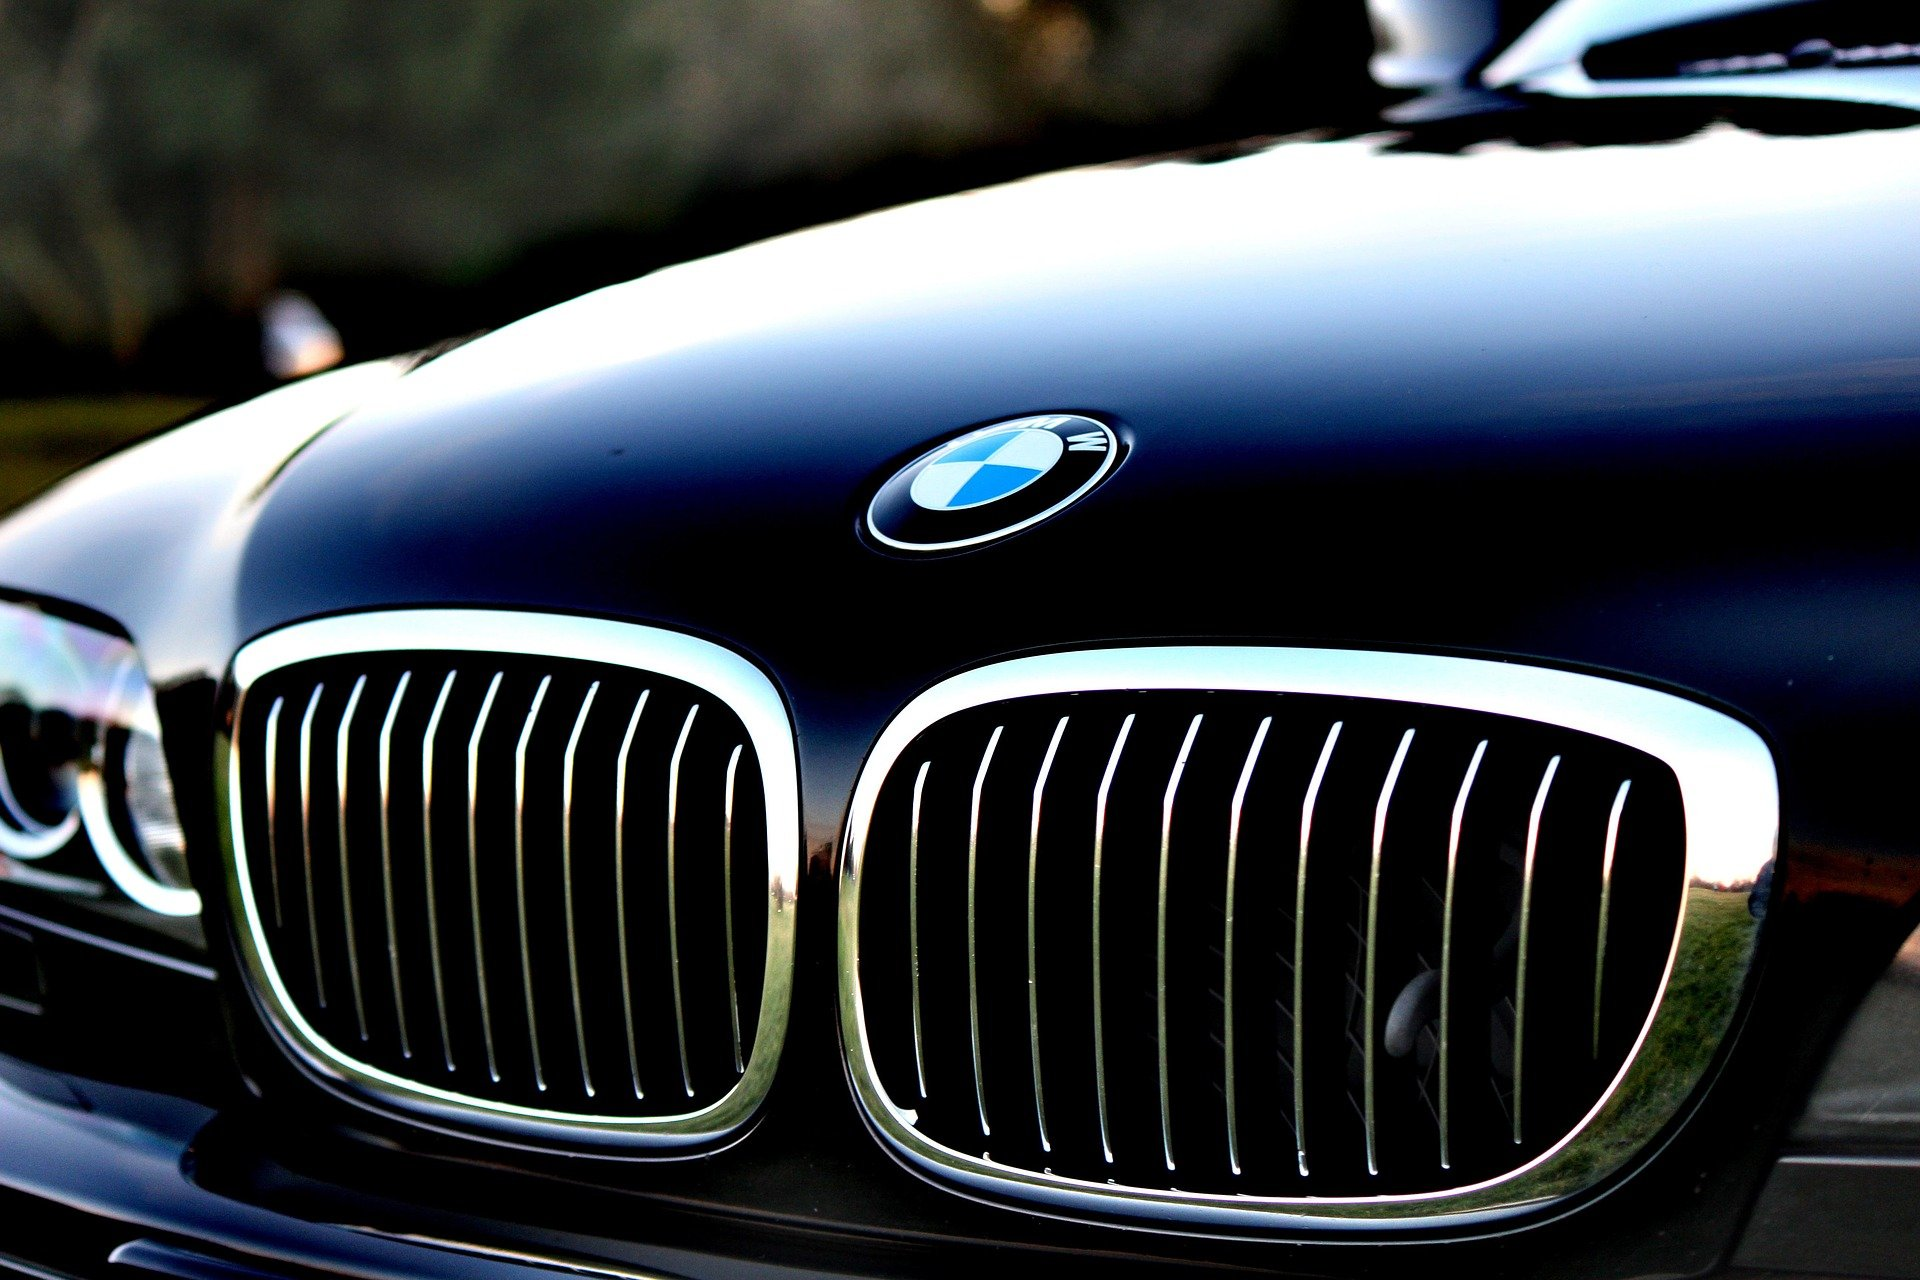 Pictured - A close up of a BMW hood   Source: Pixabay